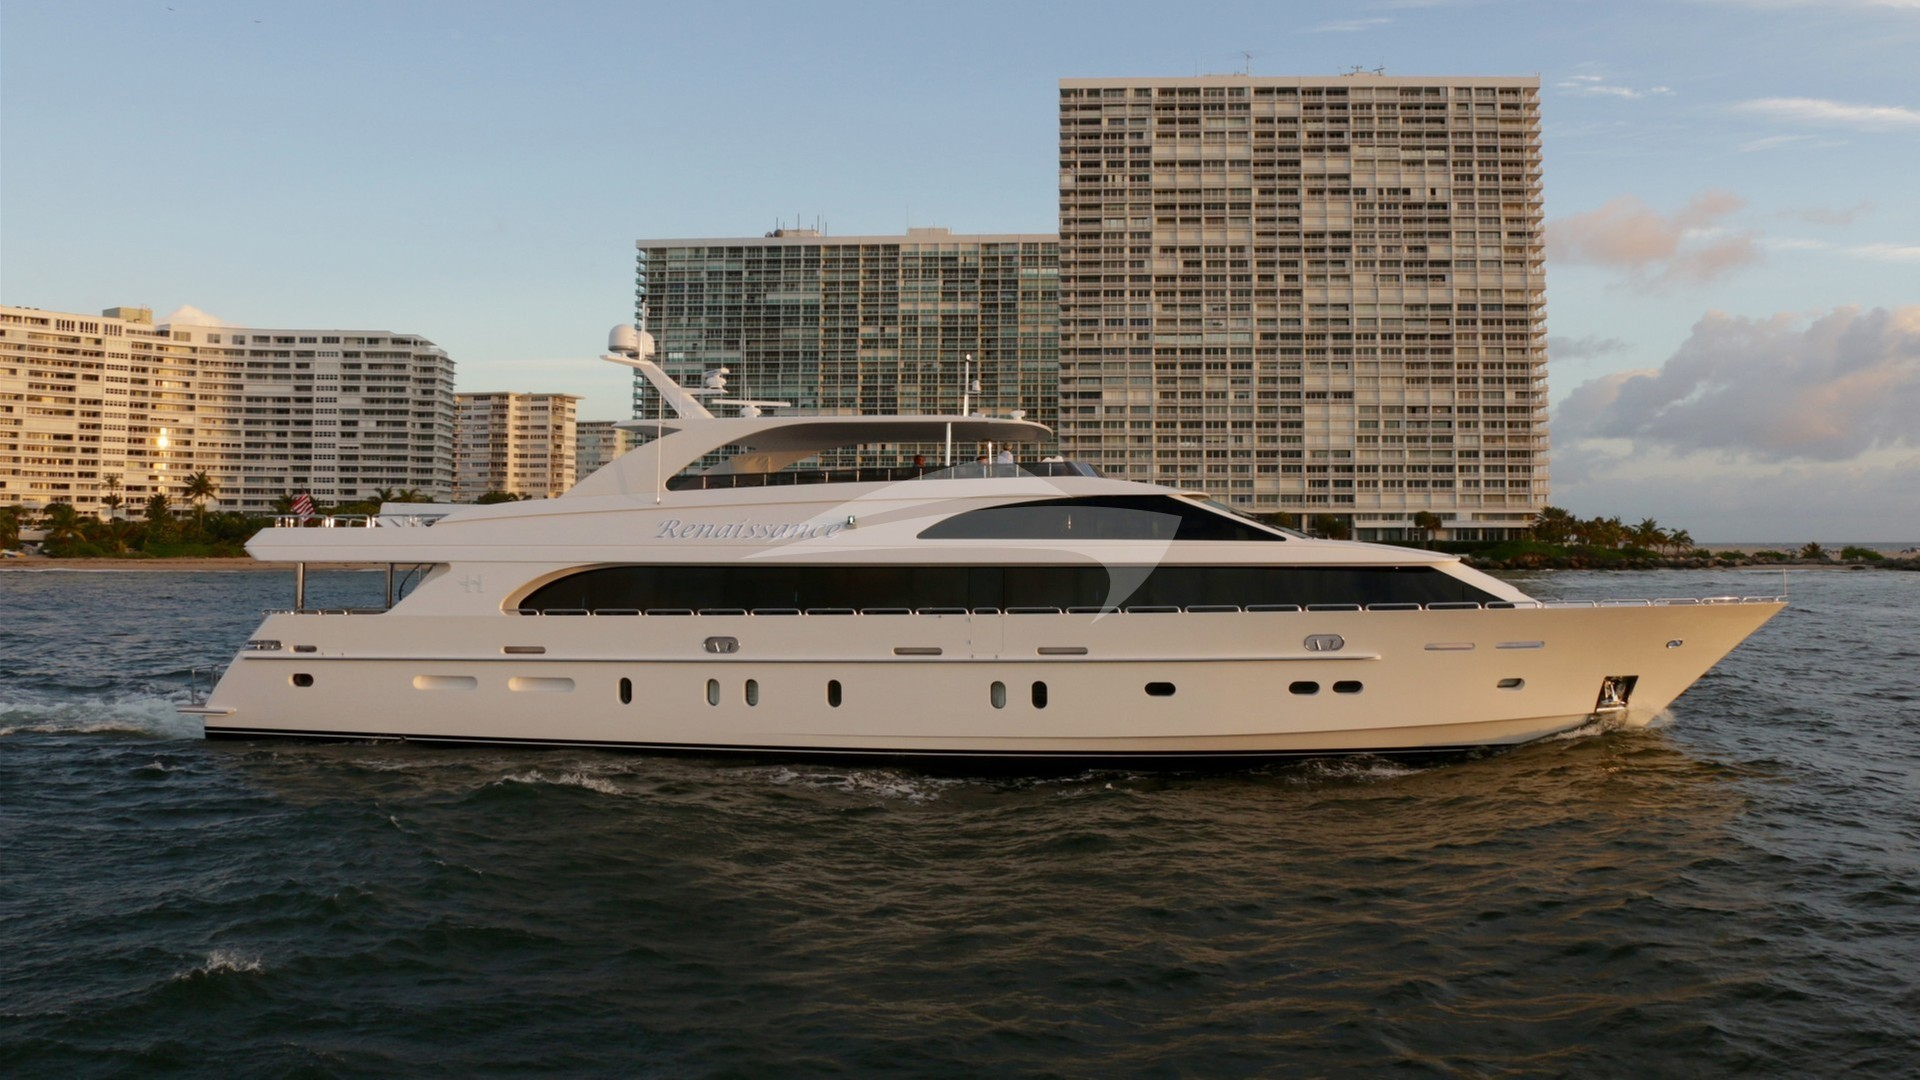 photo of Renaissance - 2016 Hargrave 116'